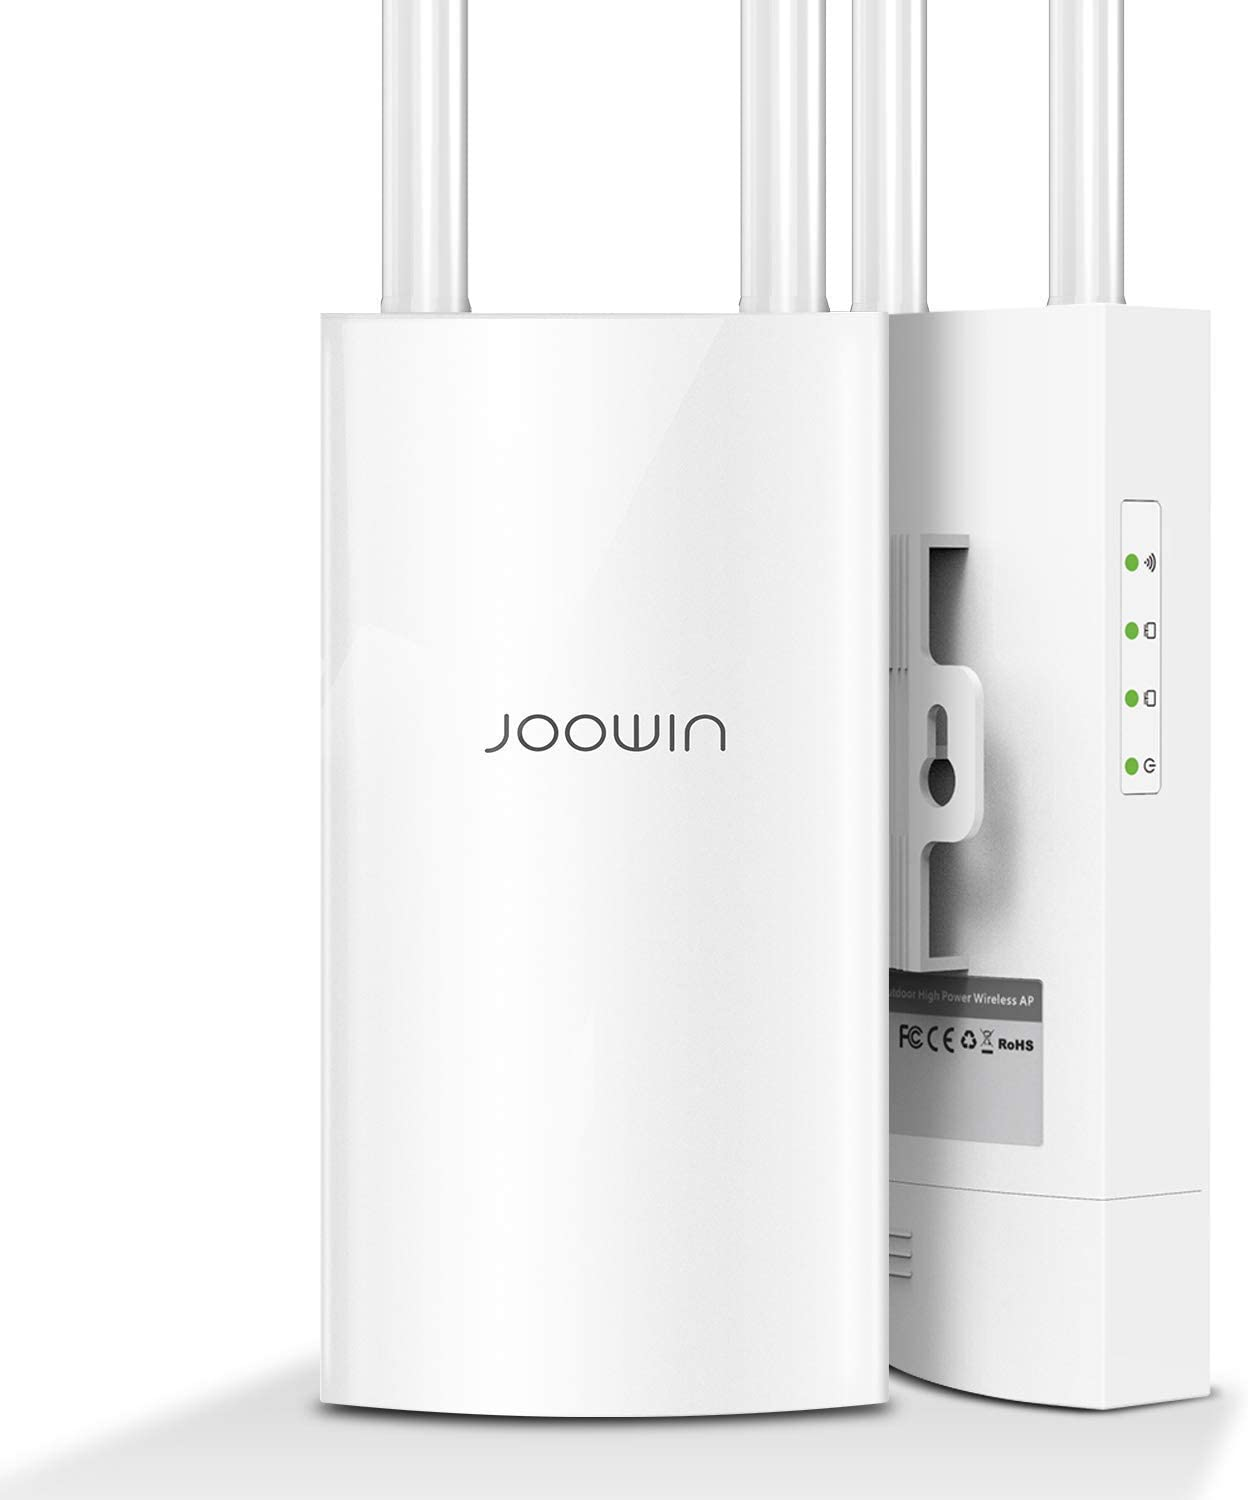 Outdoor WiFi Range Extender JOOWIN WiFi Access Point 1200Mbps AP High Power Outdoor Wireless Access Point with Ethernet Port /& PoE Dual Band 867Mbps 5Ghz 300Mbps 2.4GHz